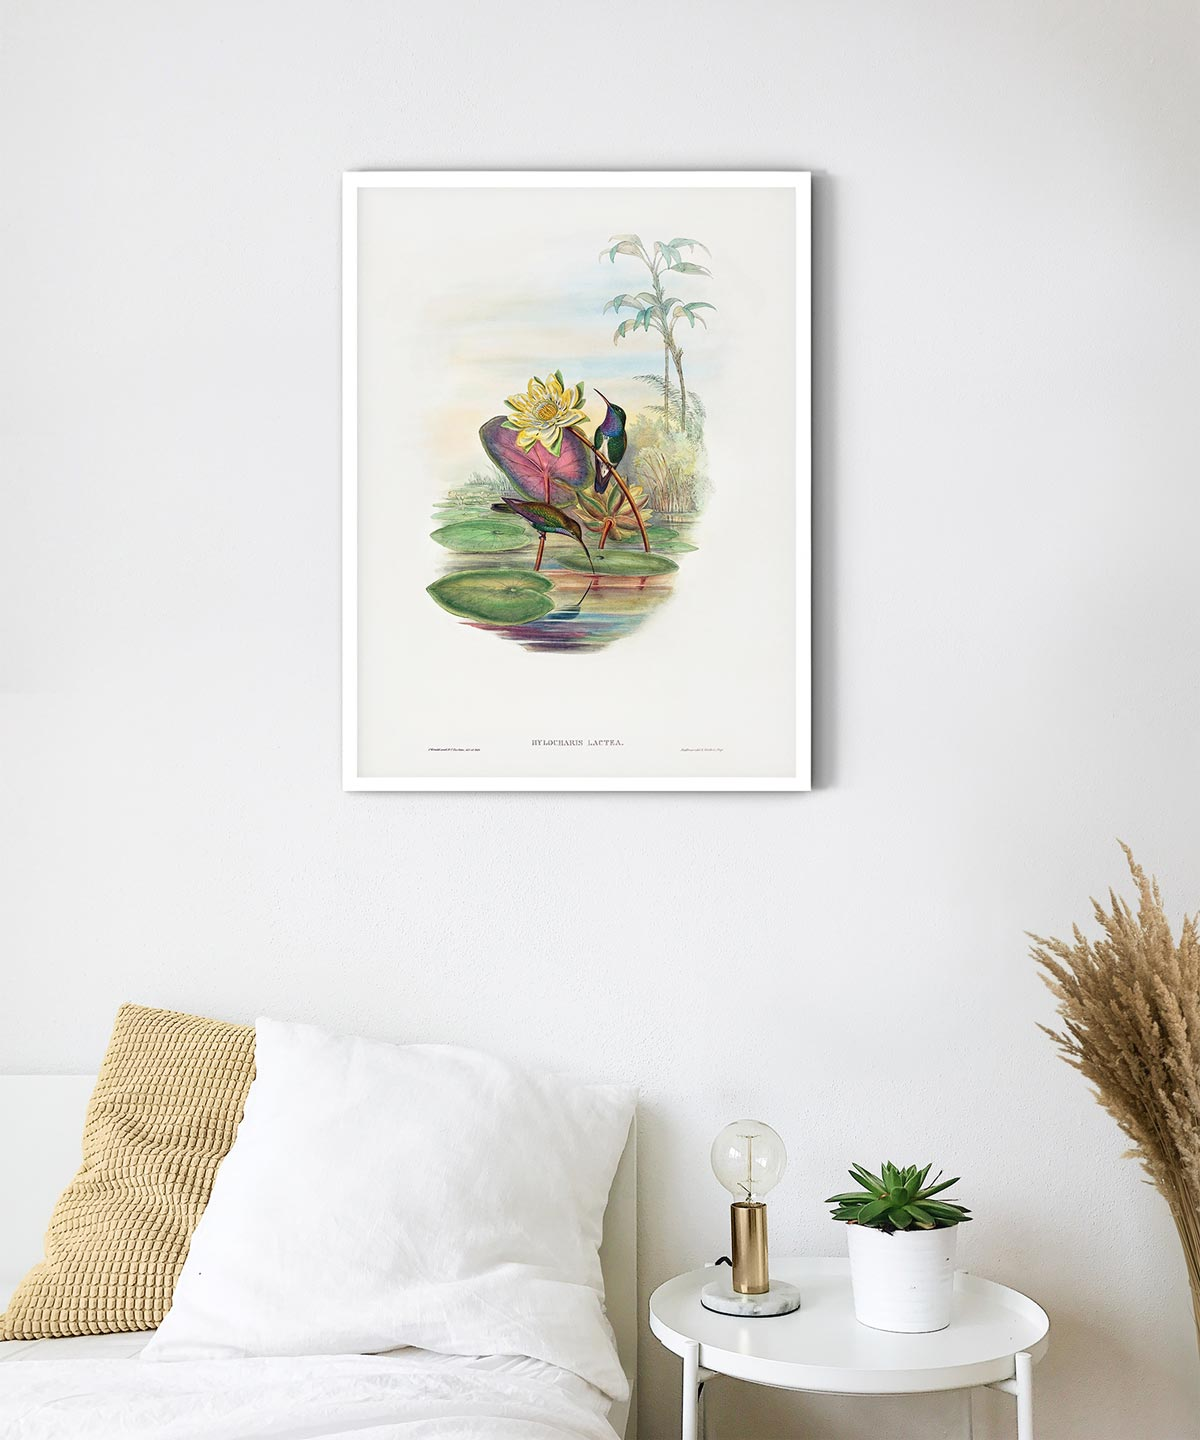 Blue-Breasted-Sapphire-Poster-White-Framed-on-Wall-Duwart